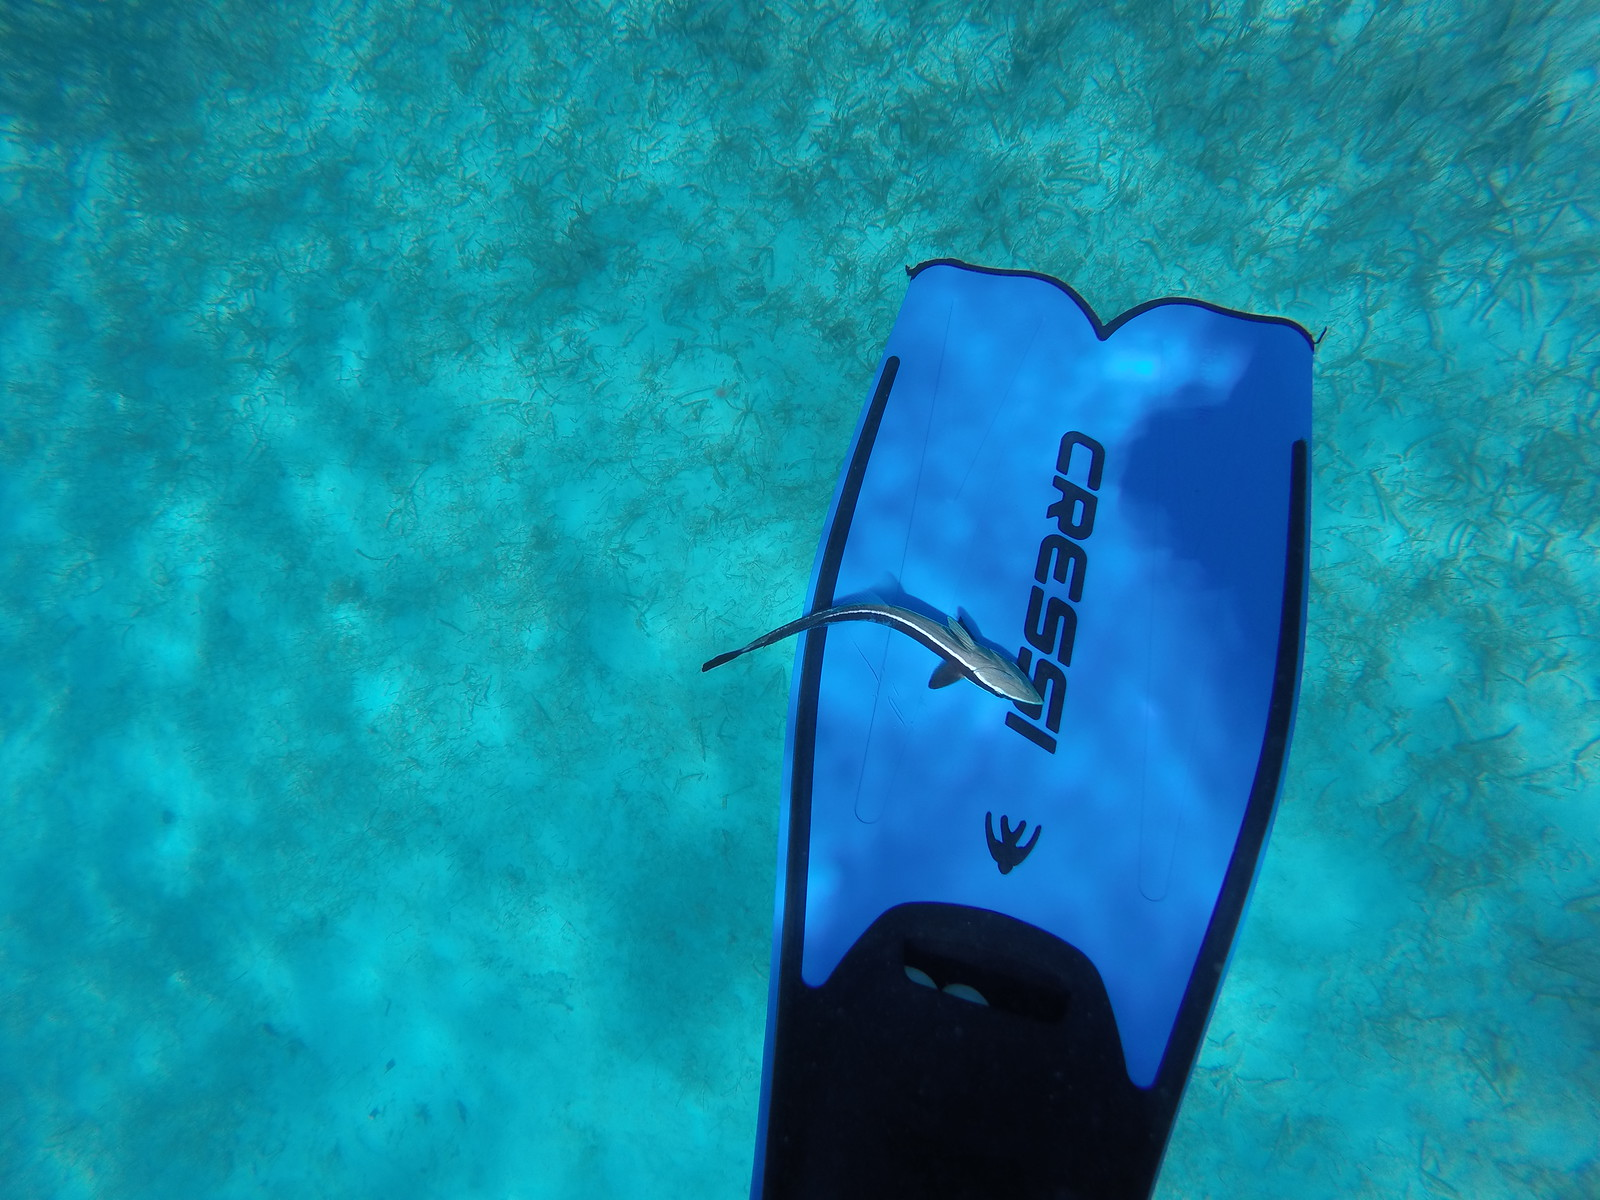 A remora attached itself to one of our snorkelers.